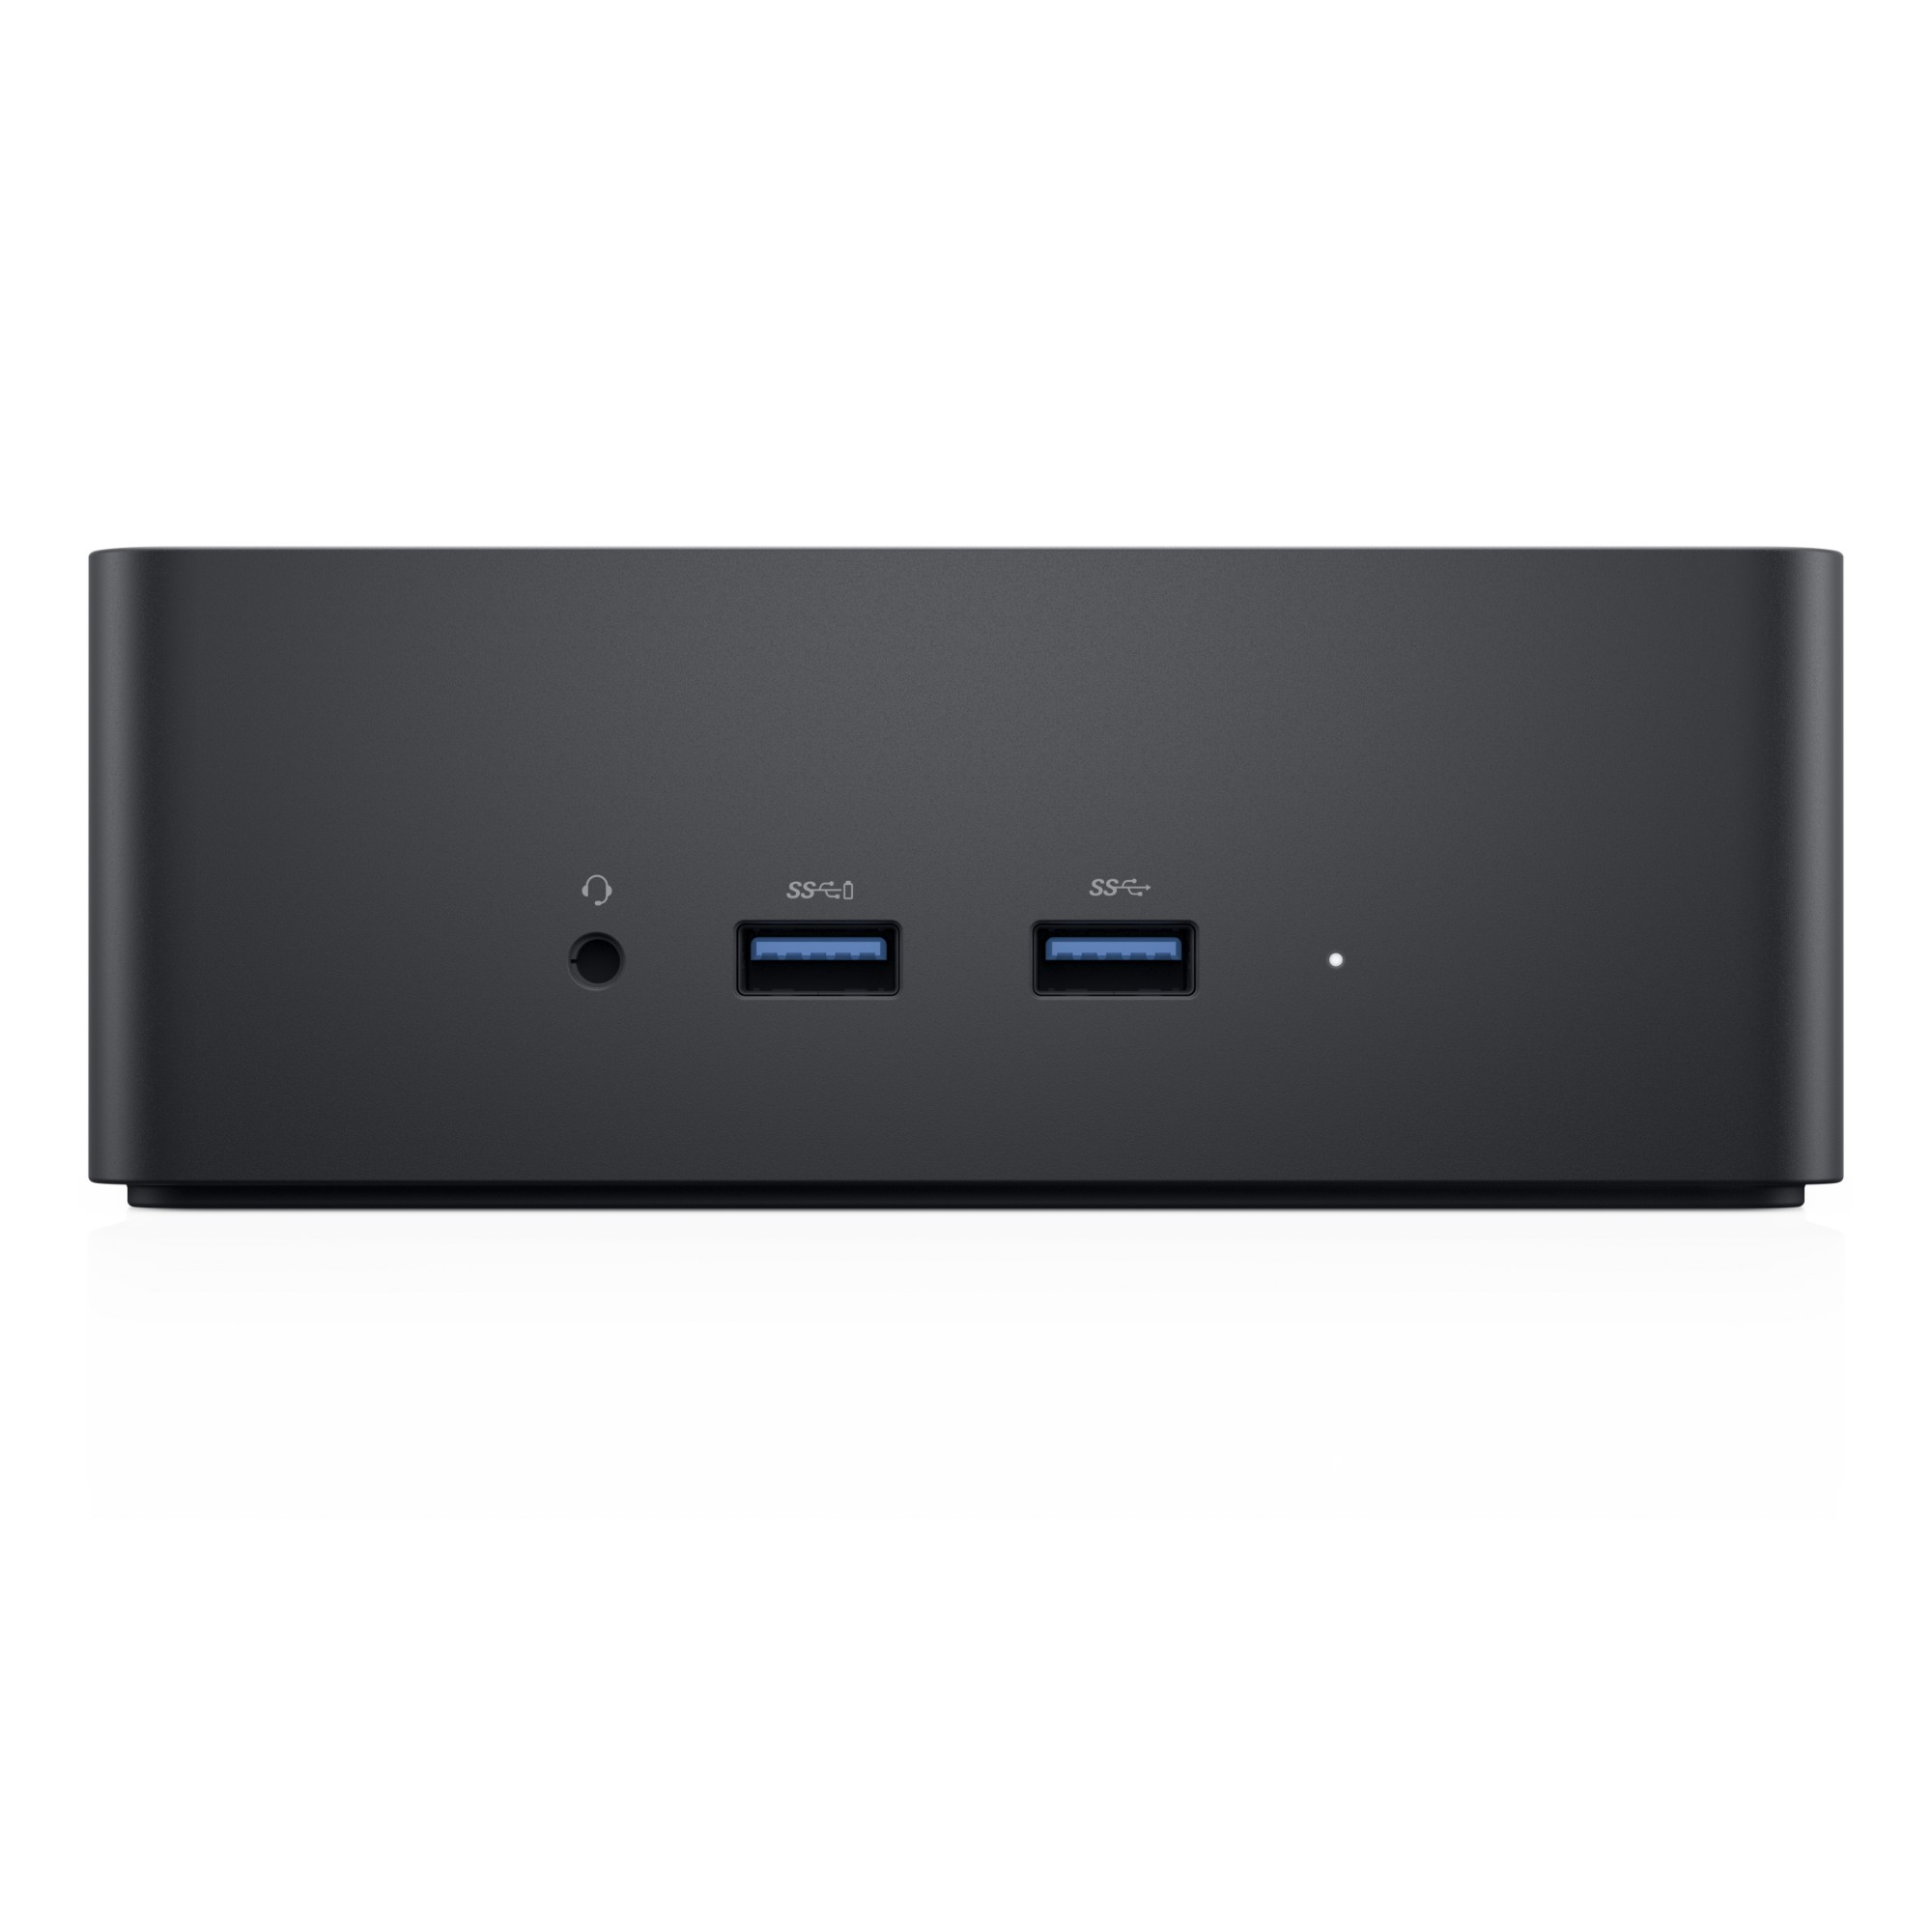 DELL TB18DC Wired USB 3 0 (3 1 Gen 1) Type-B Black